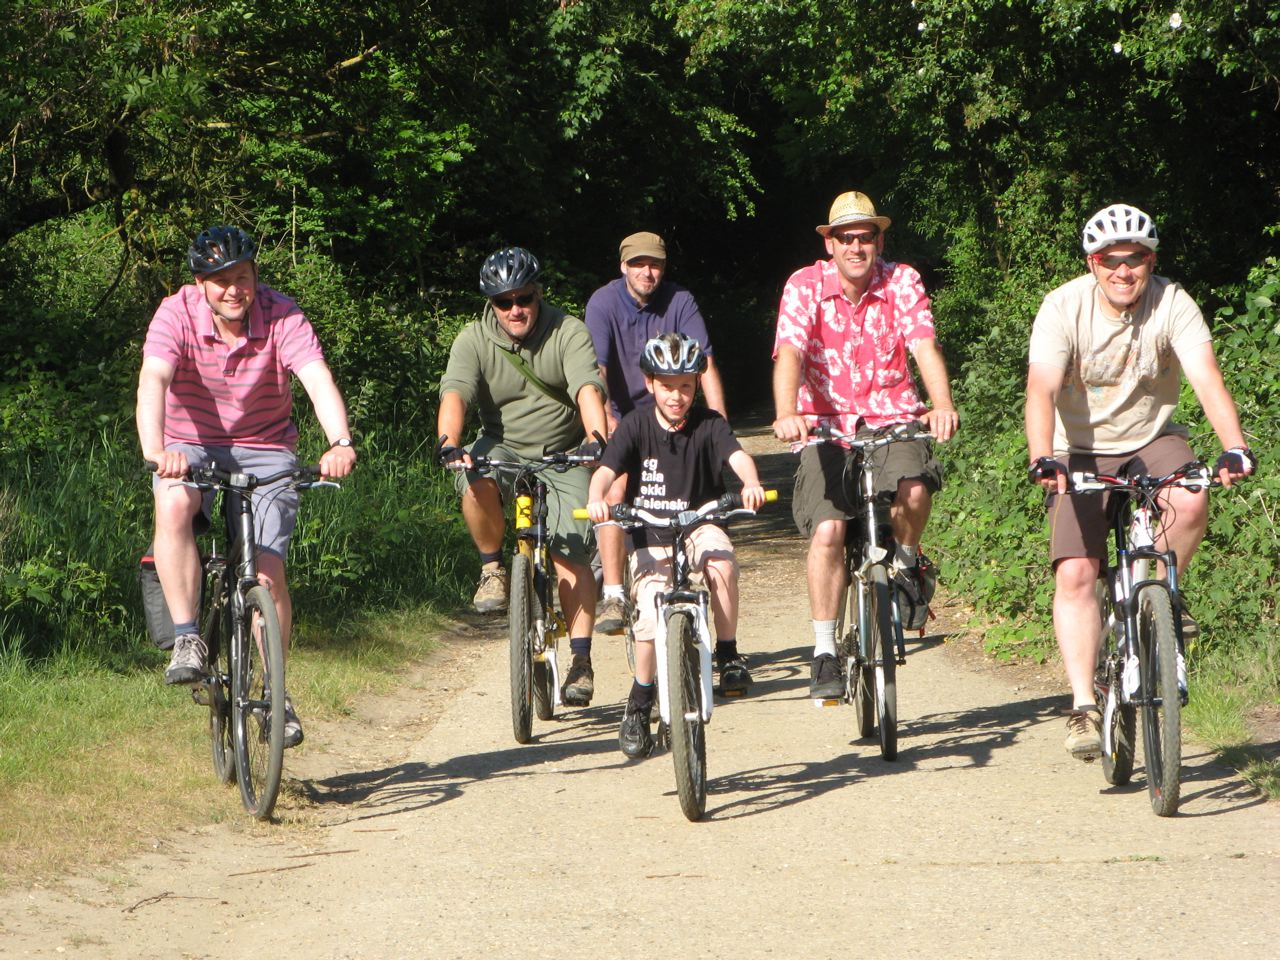 Aecb Kent Group September Events Including Popular: AECB » PedalHaus Tours 2014 For Cycling AECBers